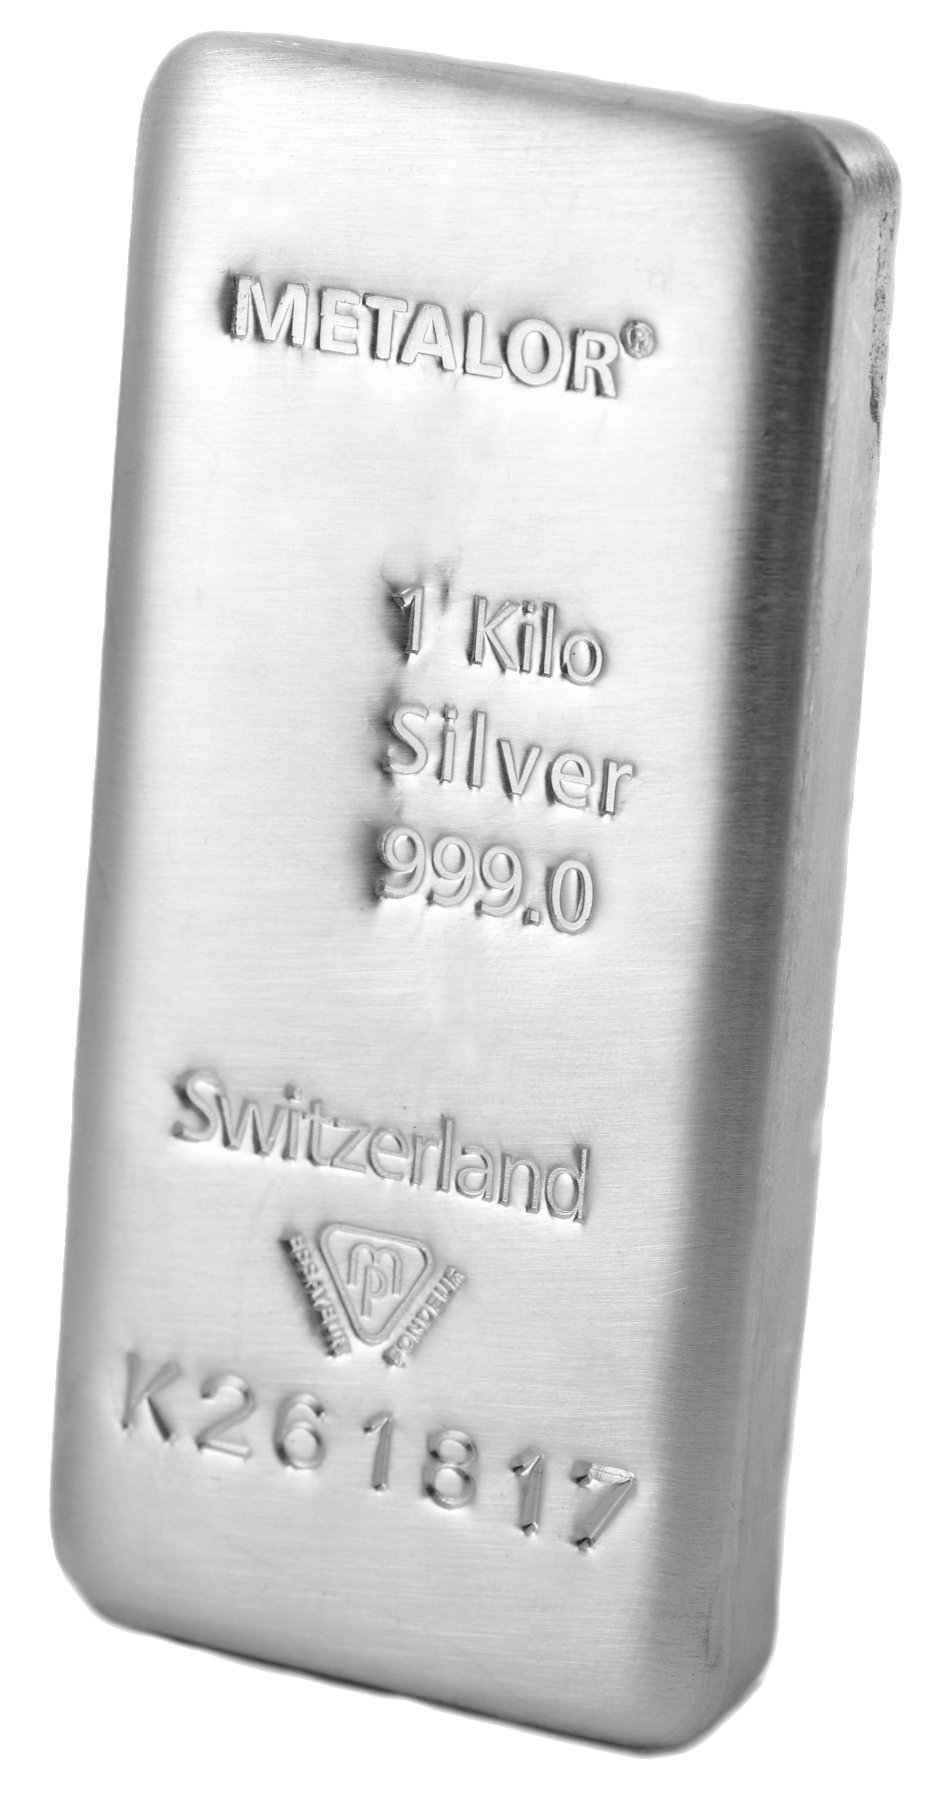 Metalor 1 Kilo Silver Bullion Bar